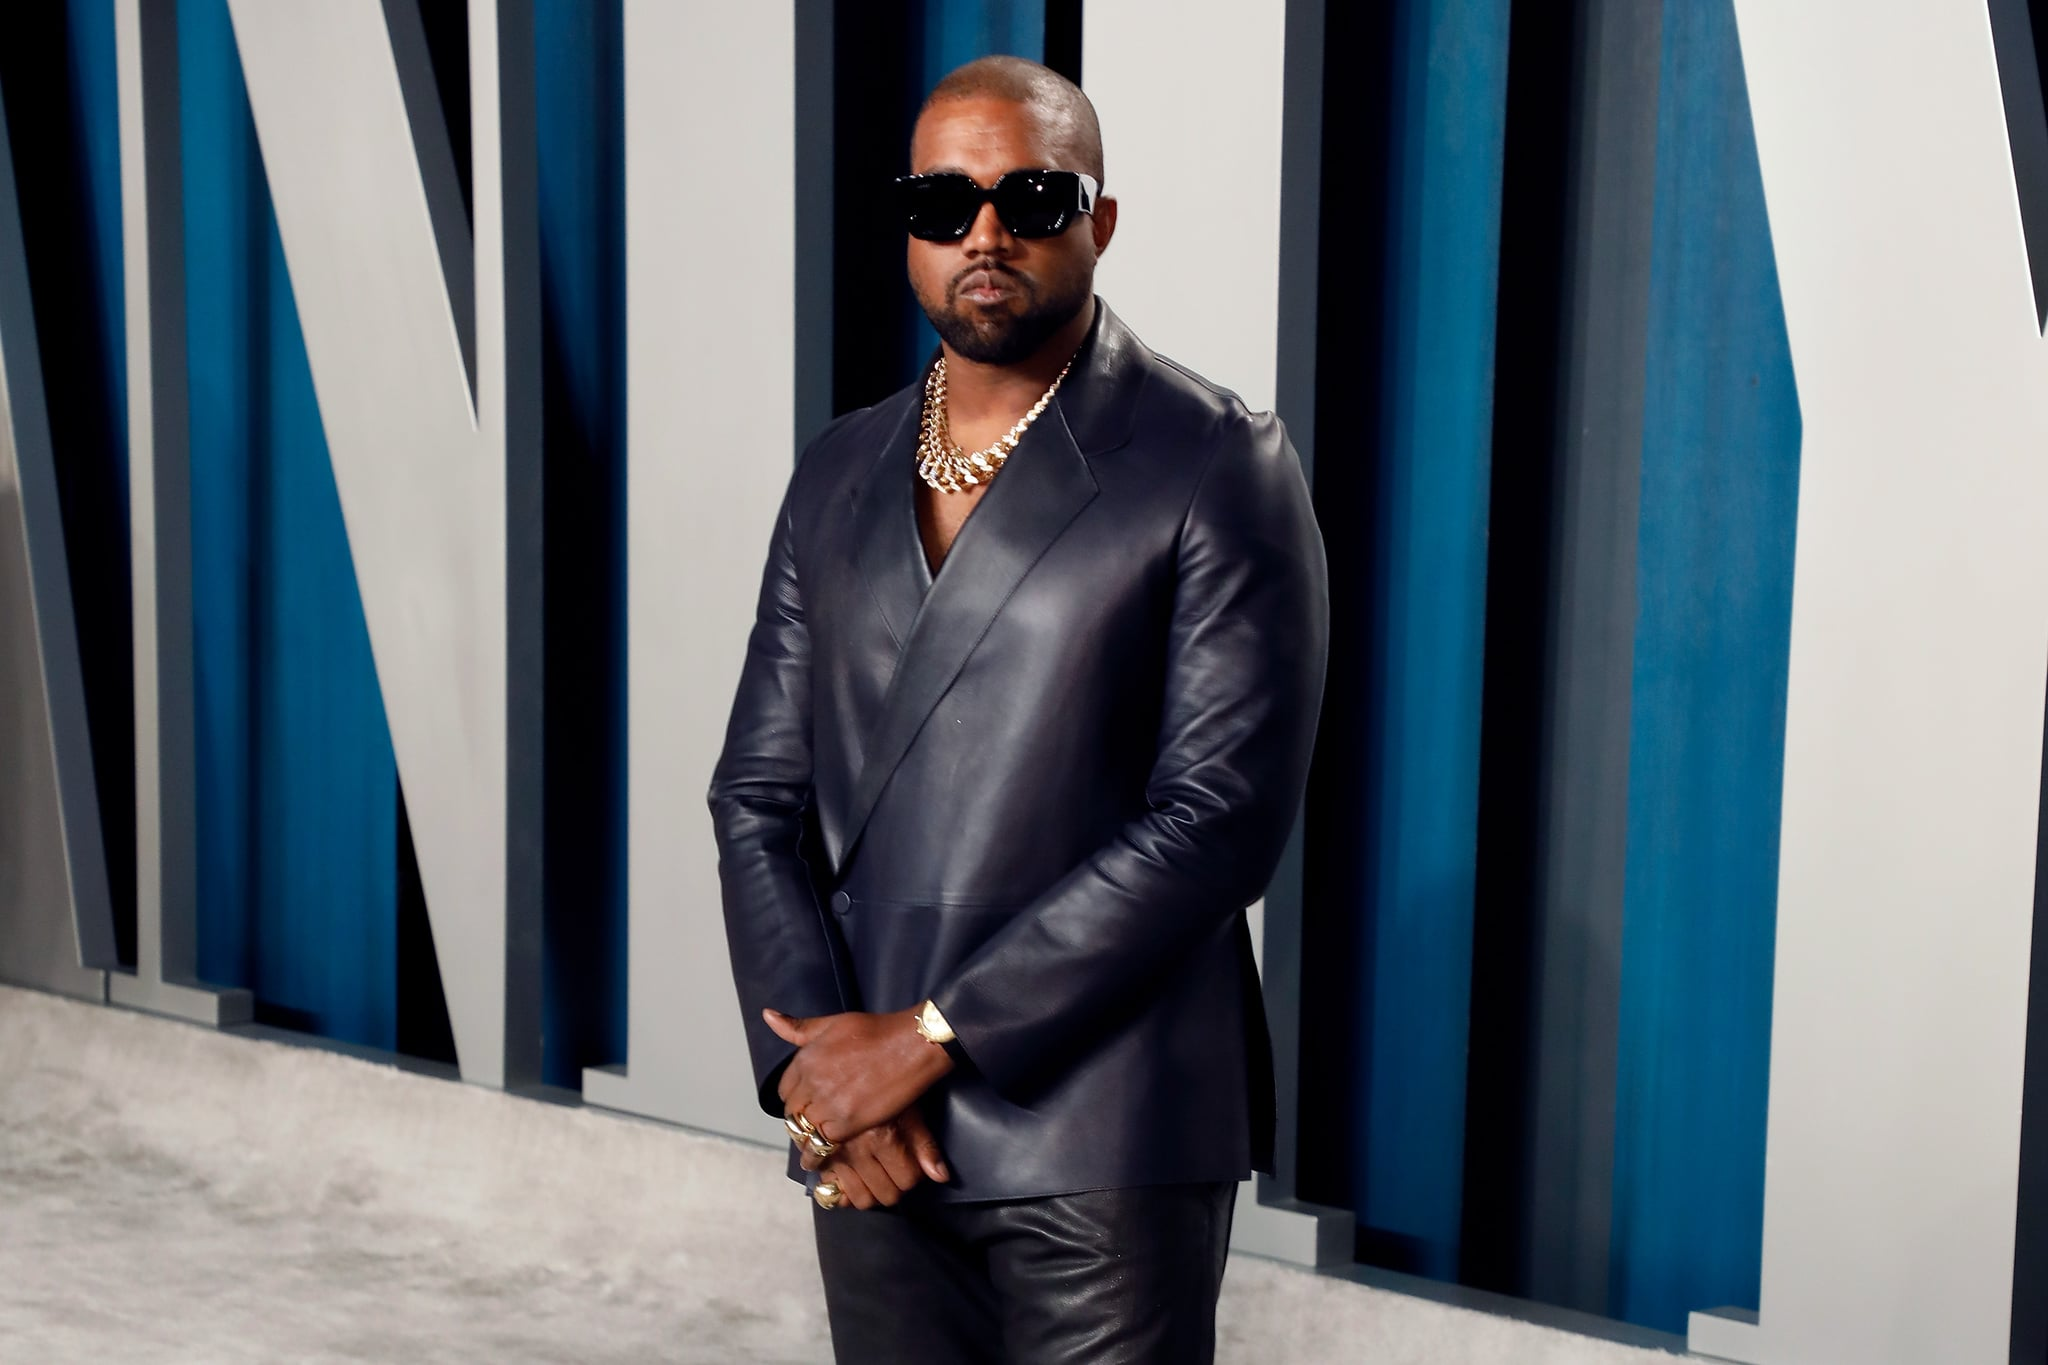 BEVERLY HILLS, CALIFORNIA - FEBRUARY 09: Kanye West attends the 2020 Vanity Fair Oscar Party at Wallis Annenberg Center for the Performing Arts on February 09, 2020 in Beverly Hills, California. (Photo by Taylor Hill/FilmMagic,)